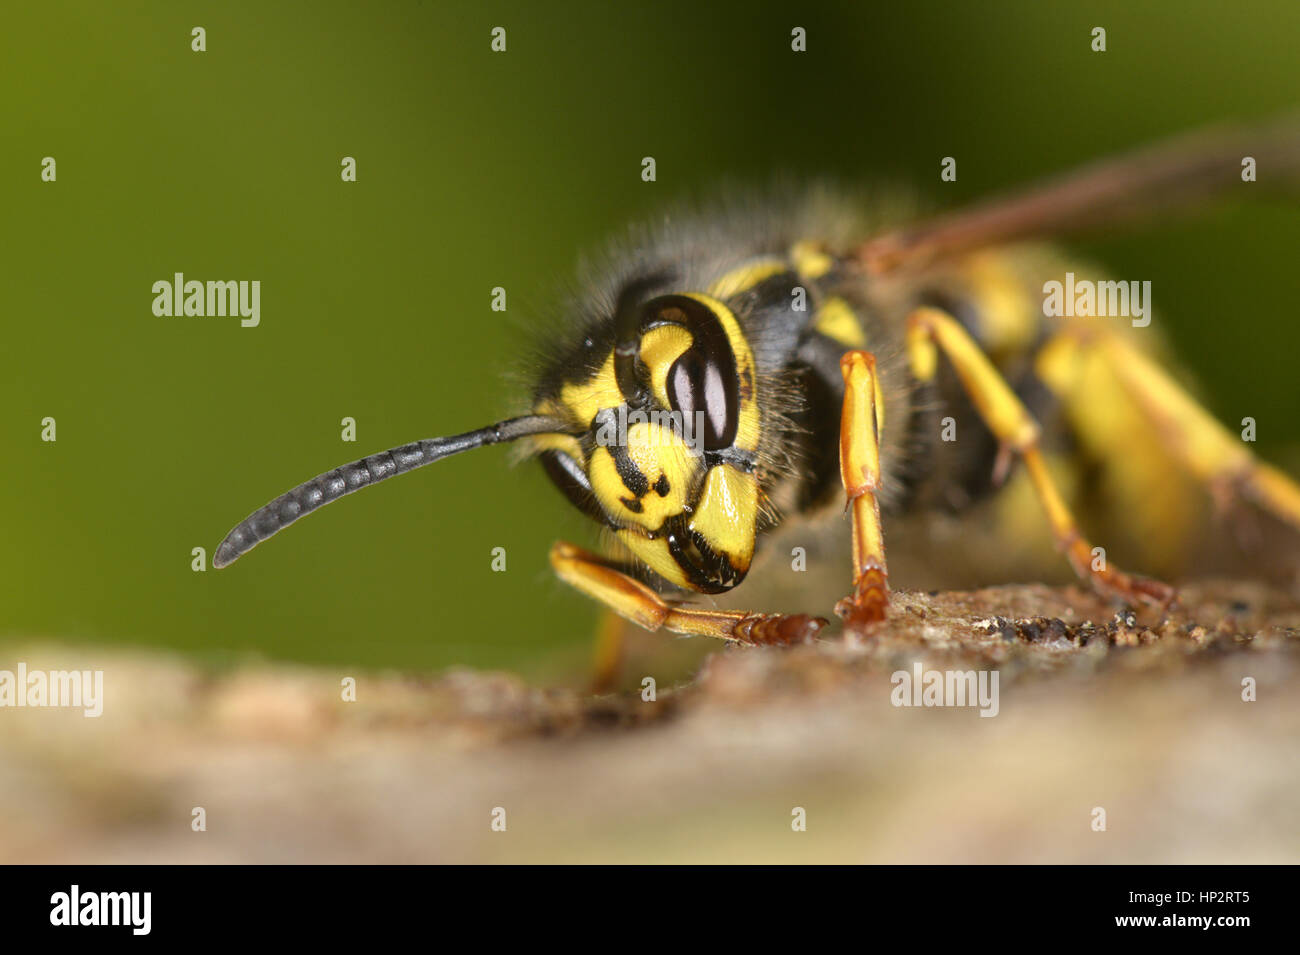 Common Wasp - Vespula vulgaris Stock Photo